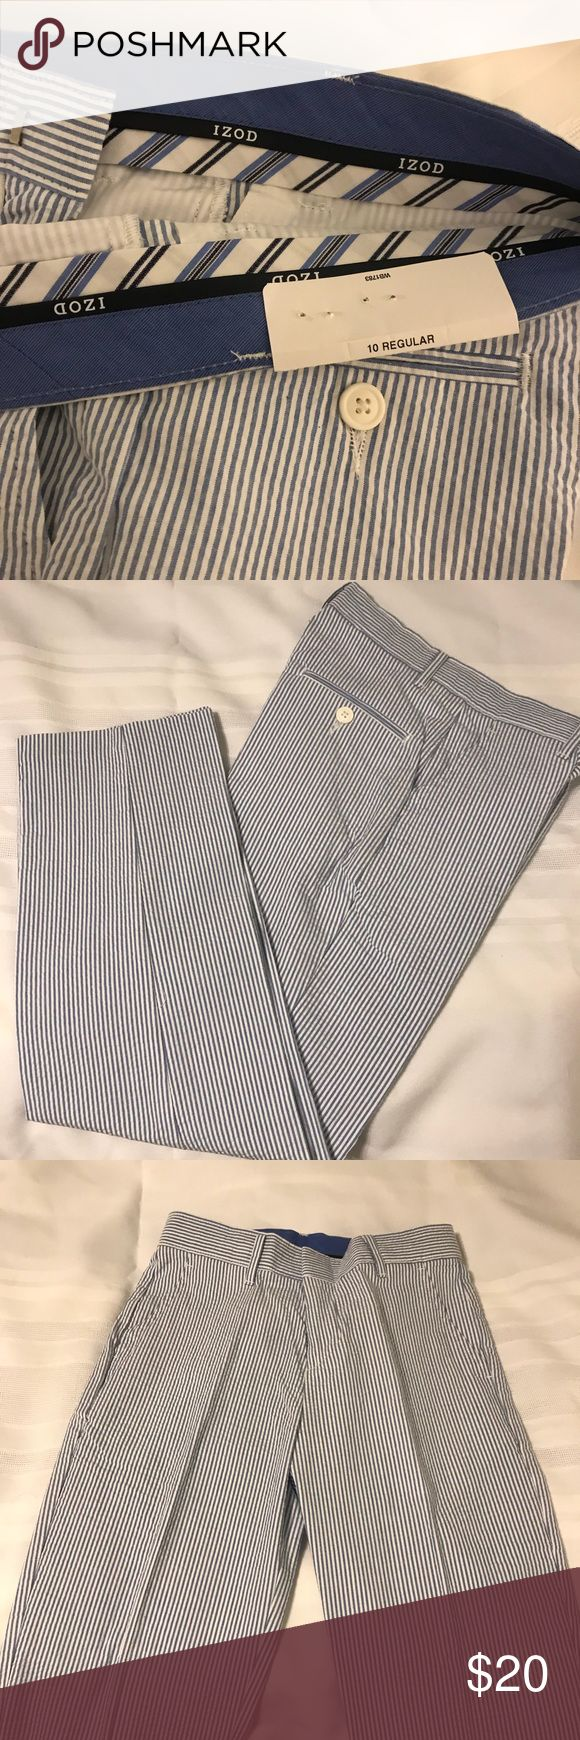 Boys size 10 seersucker pants NWT Boys Izod seersucker pants. Never worn. Izod Bottoms Casual